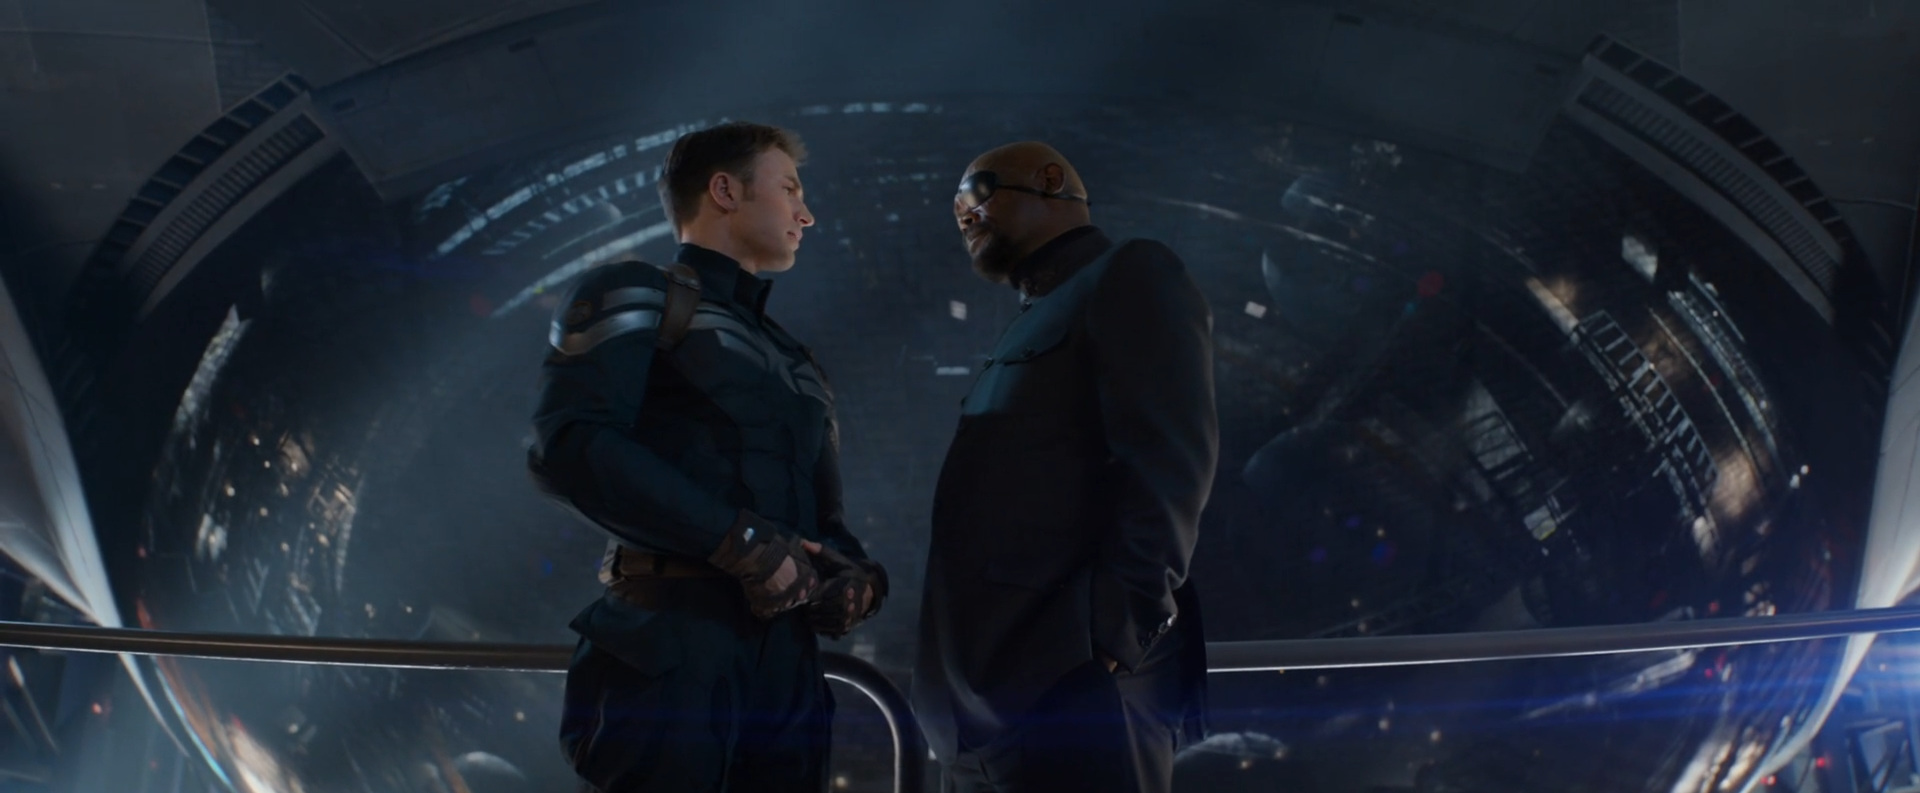 Captain America: Winter Soldier  (2014): freedom versus fear, achieving security in a threatening world